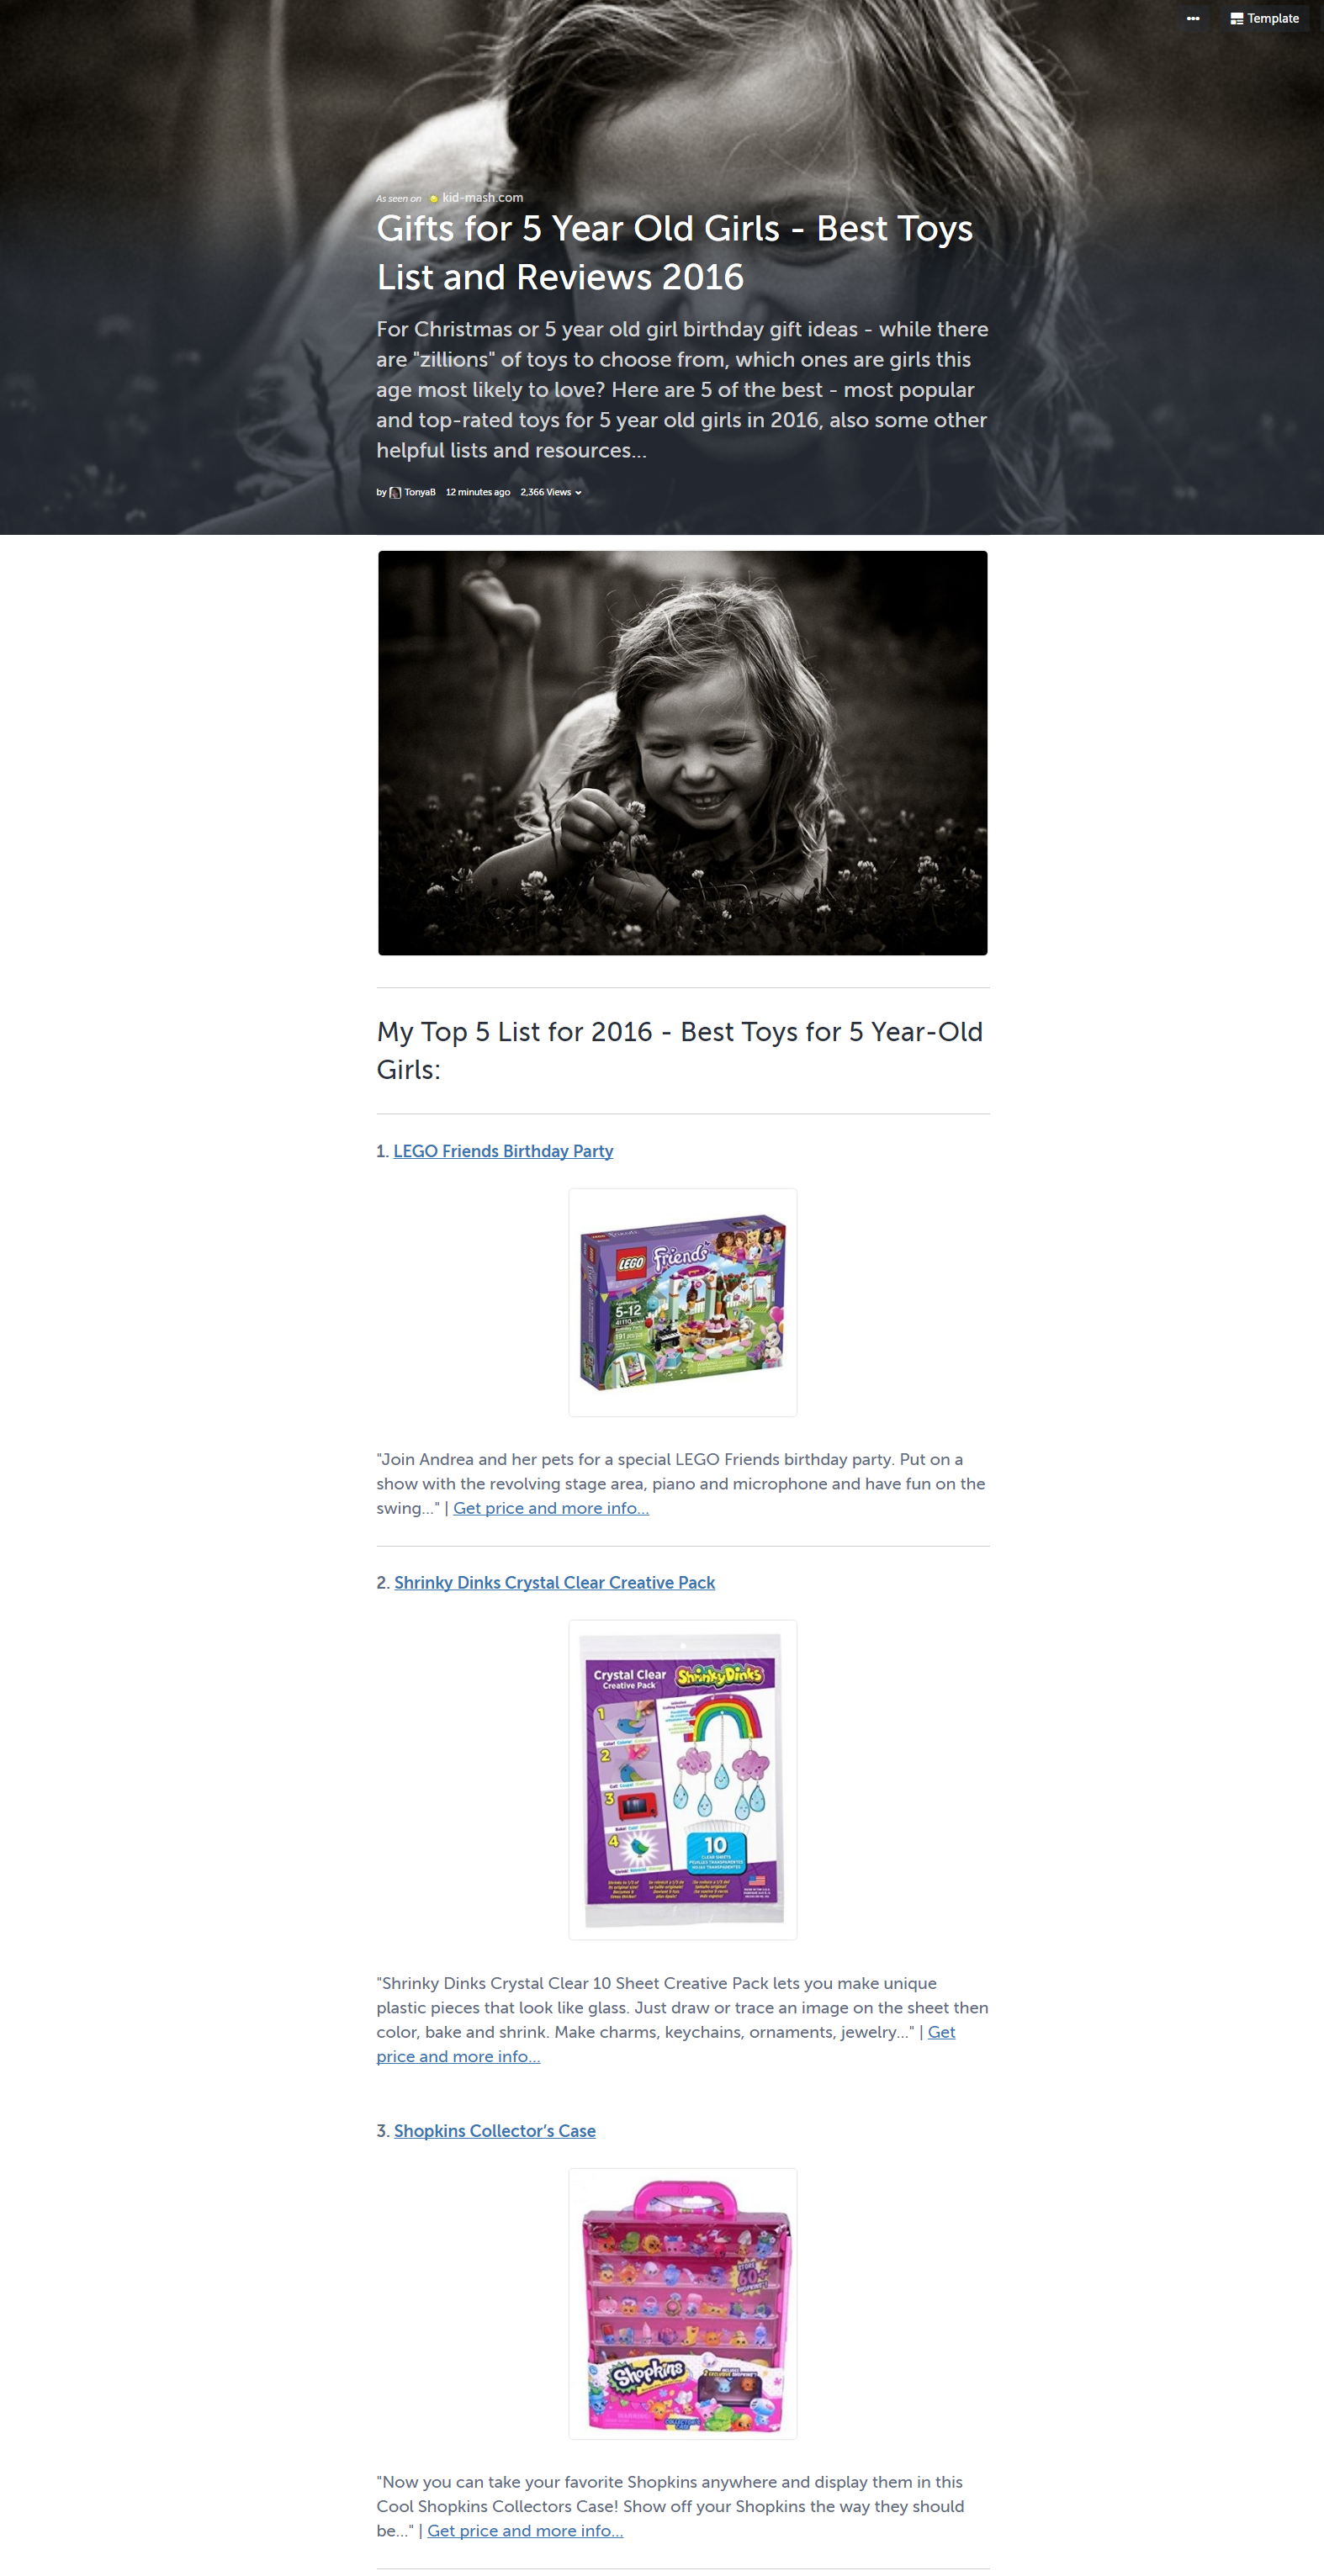 Gifts For 5 Year Old Girls Best Toys List And Reviews 2016 Best